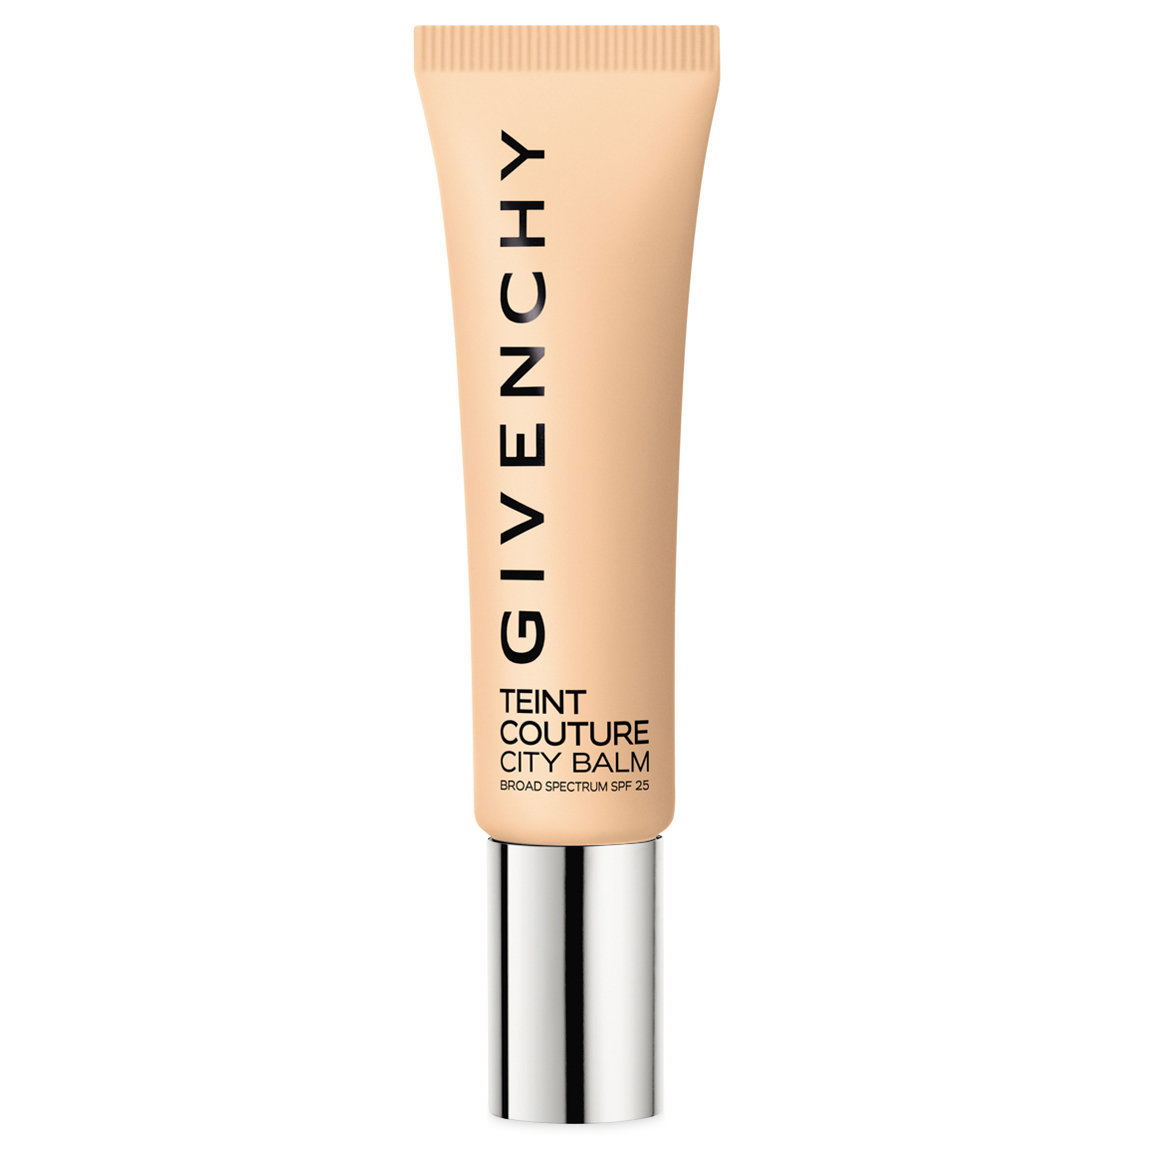 Givenchy Teint Couture City Balm C110 alternative view 1.